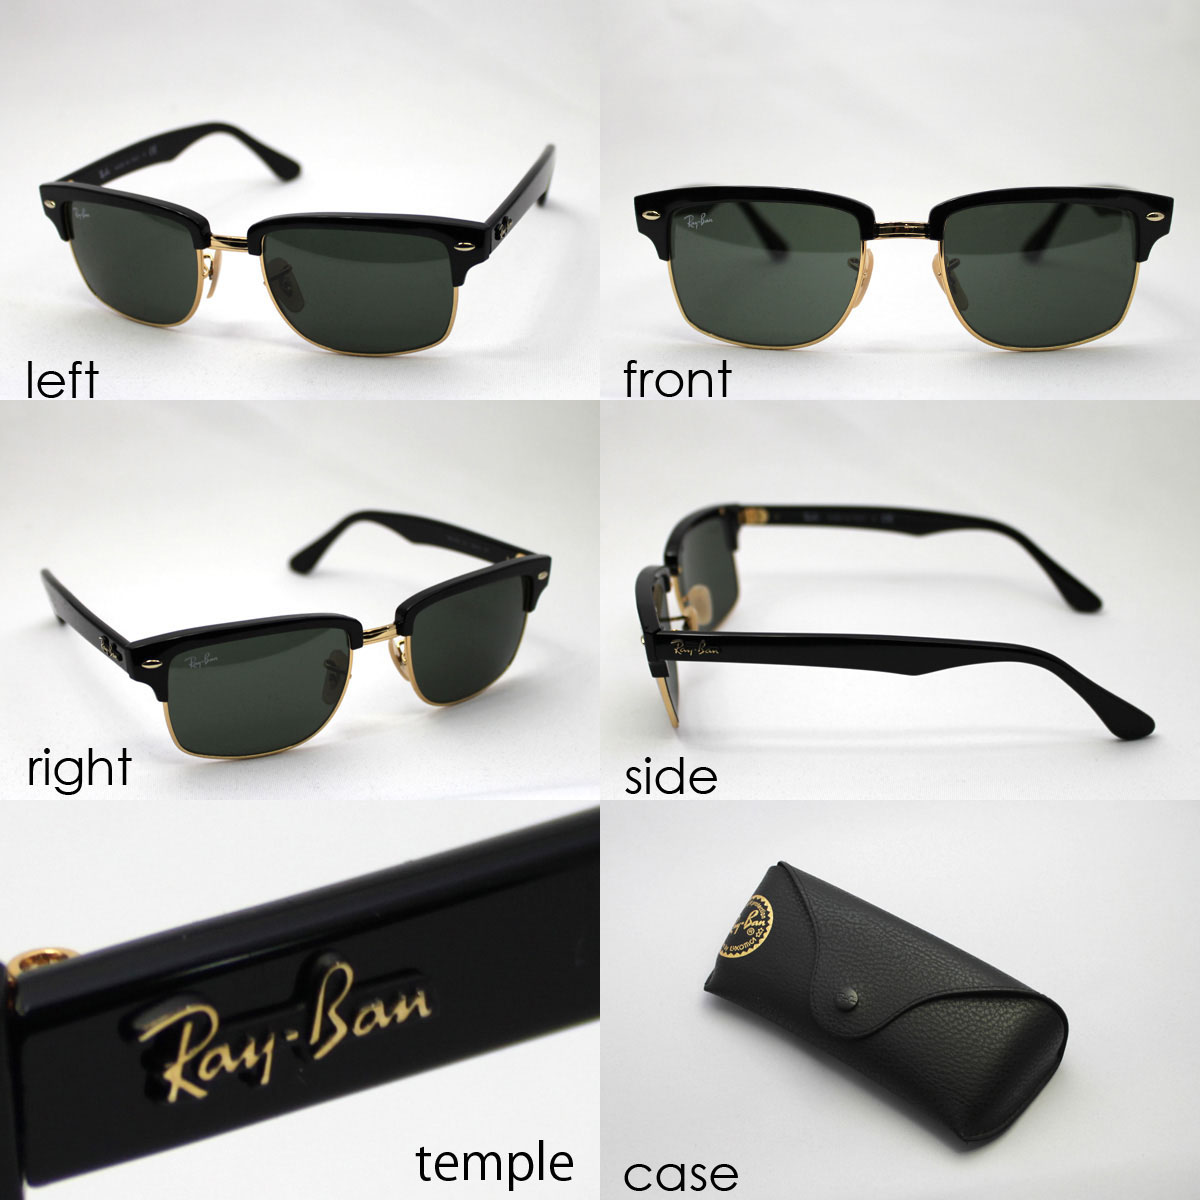 55135d801b ... shopping rb4190 601 rayban ray ban sunglasses squared club master  glassmania squared clubmaster sunglasses 64134 7d0bf ...